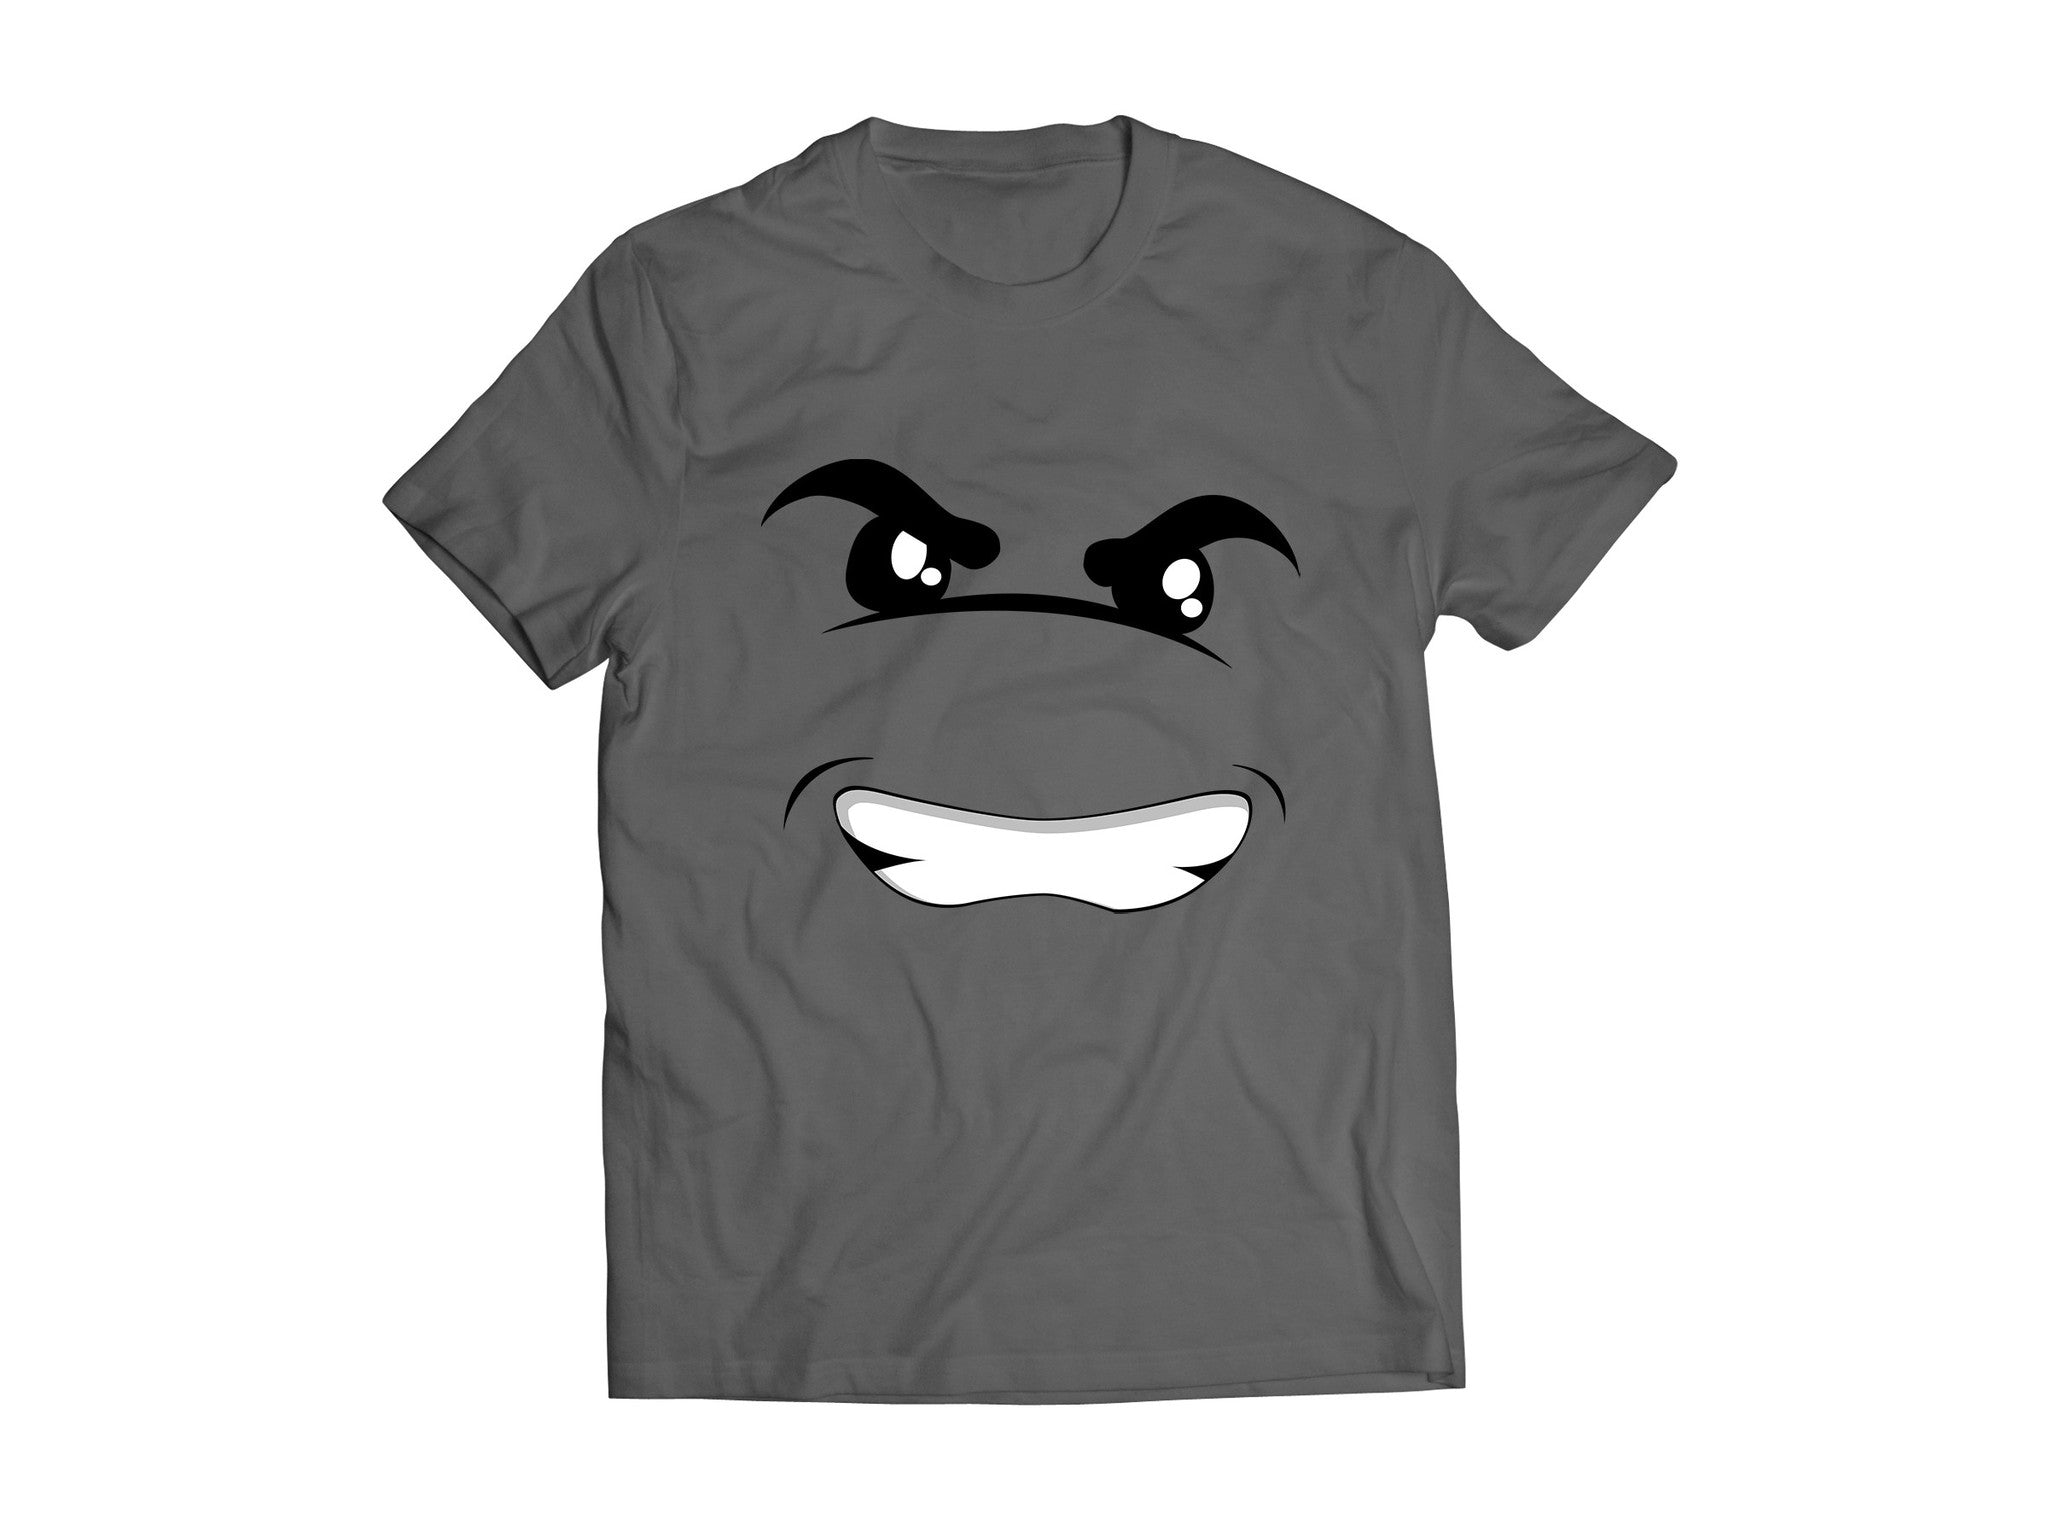 BEASTYWF GREY T-SHIRT